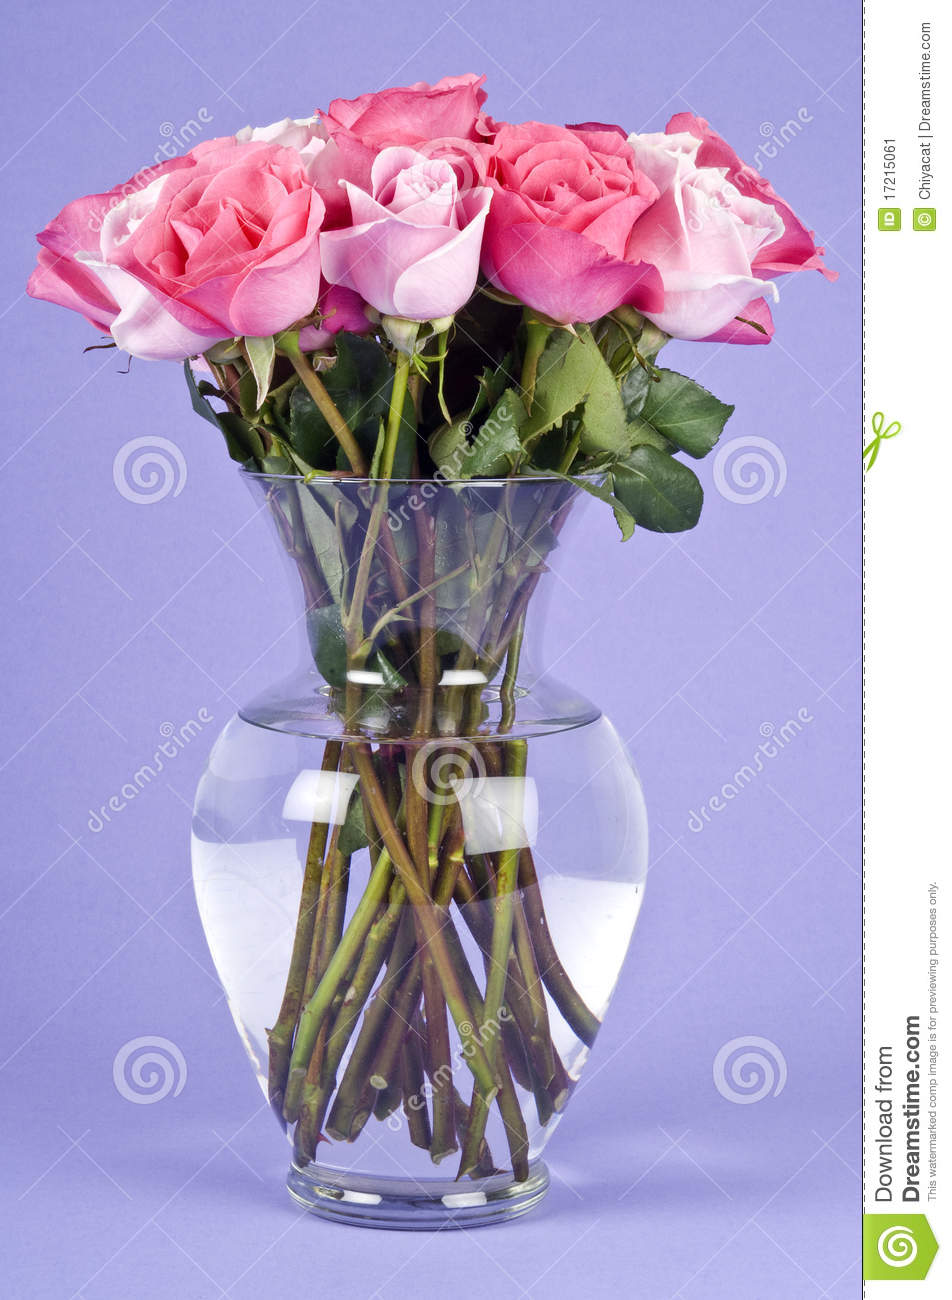 Bouquet Of Pink Roses In A Glass Vase Stock Image Image 17215061